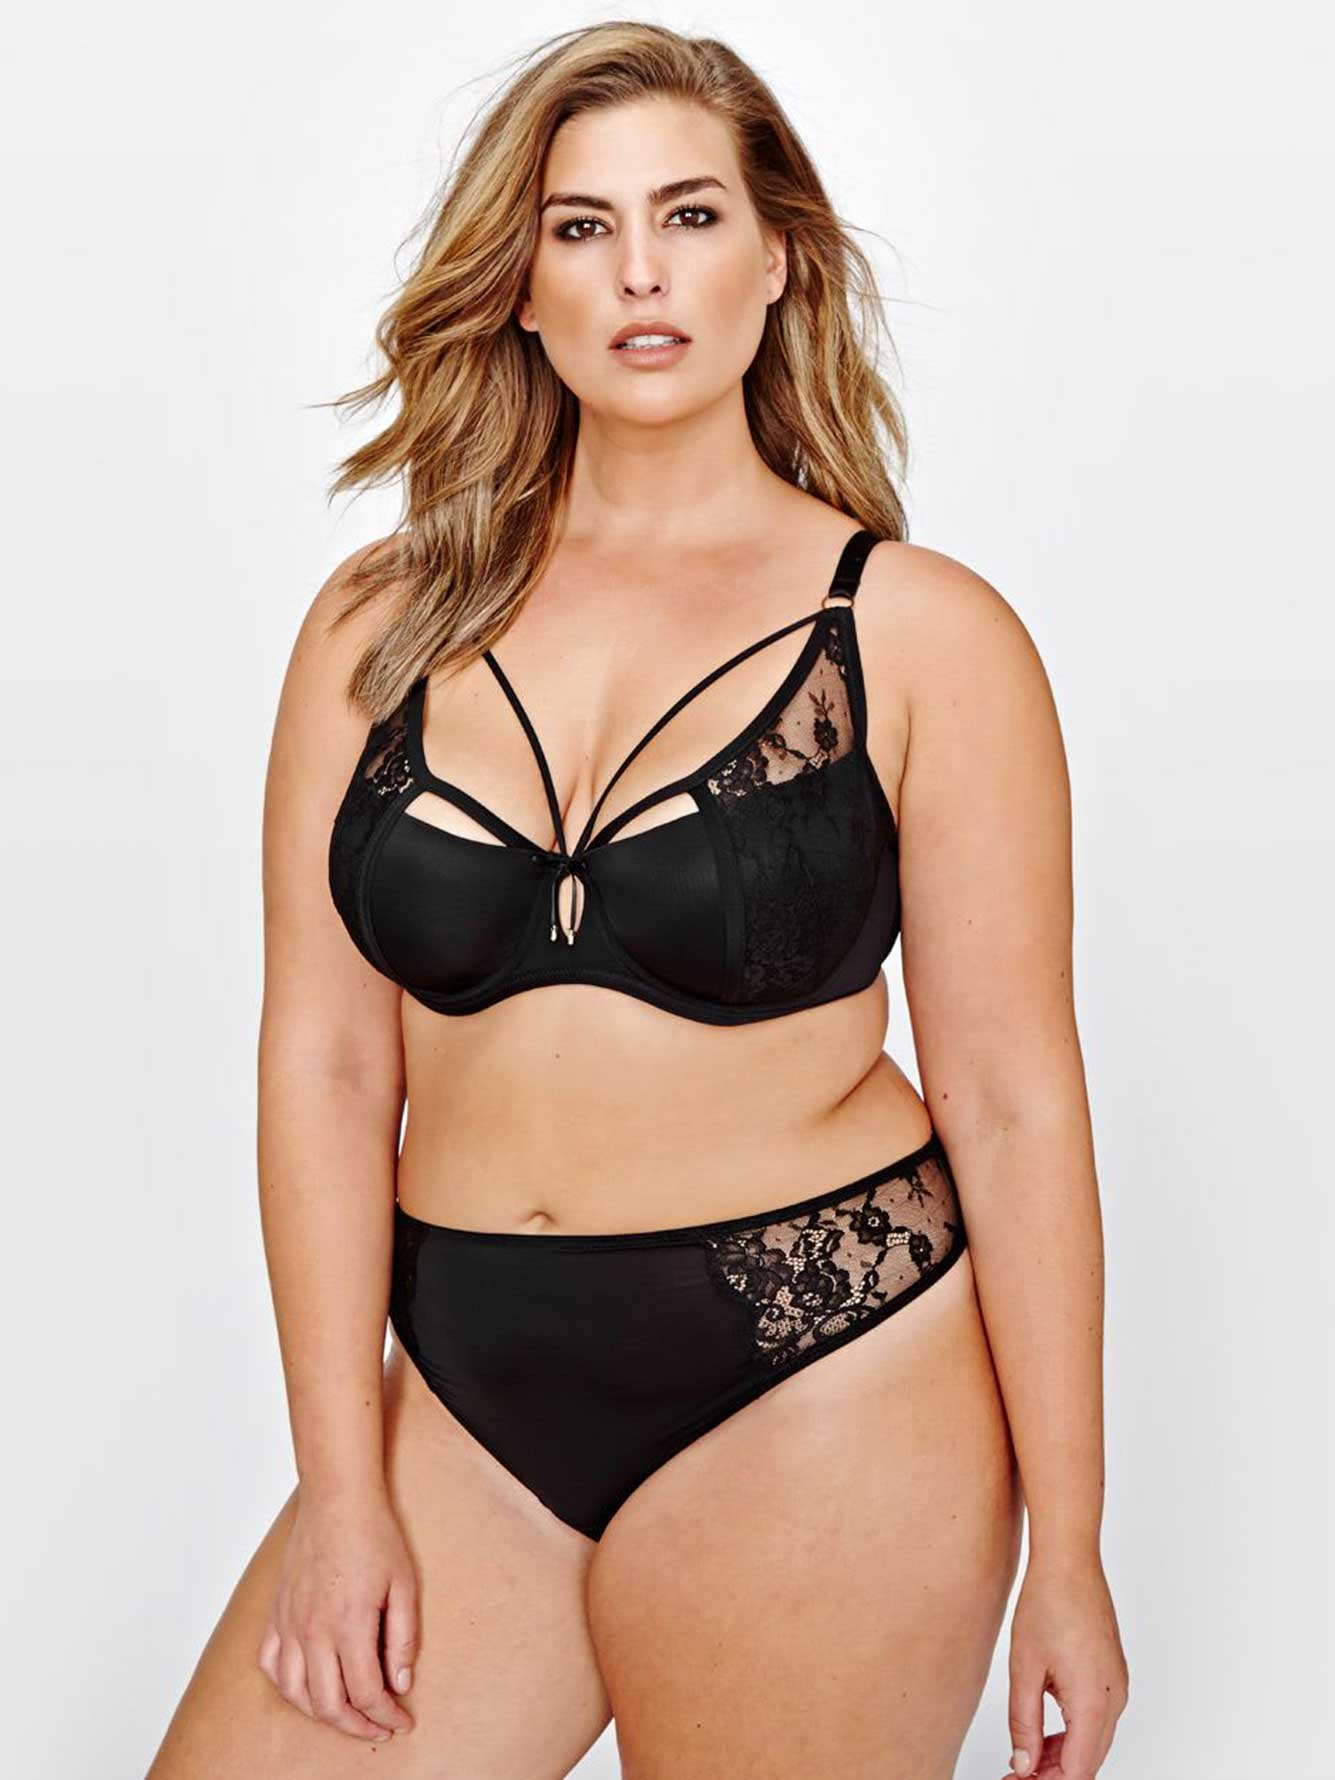 5836729fbb861 Ashley Graham Diva Lace   Straps Bra with Front Strap